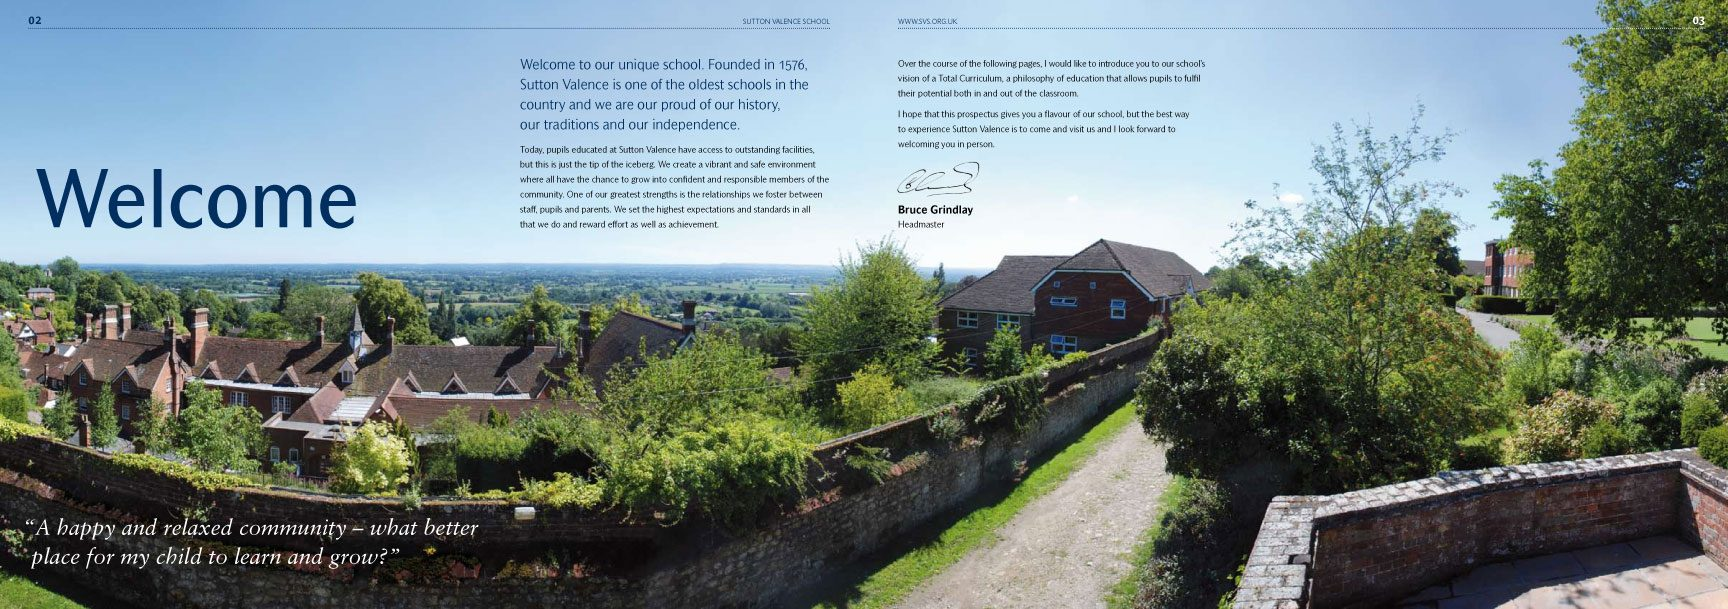 Sutton Valence School Prospectus – independent school branding – CHP Design